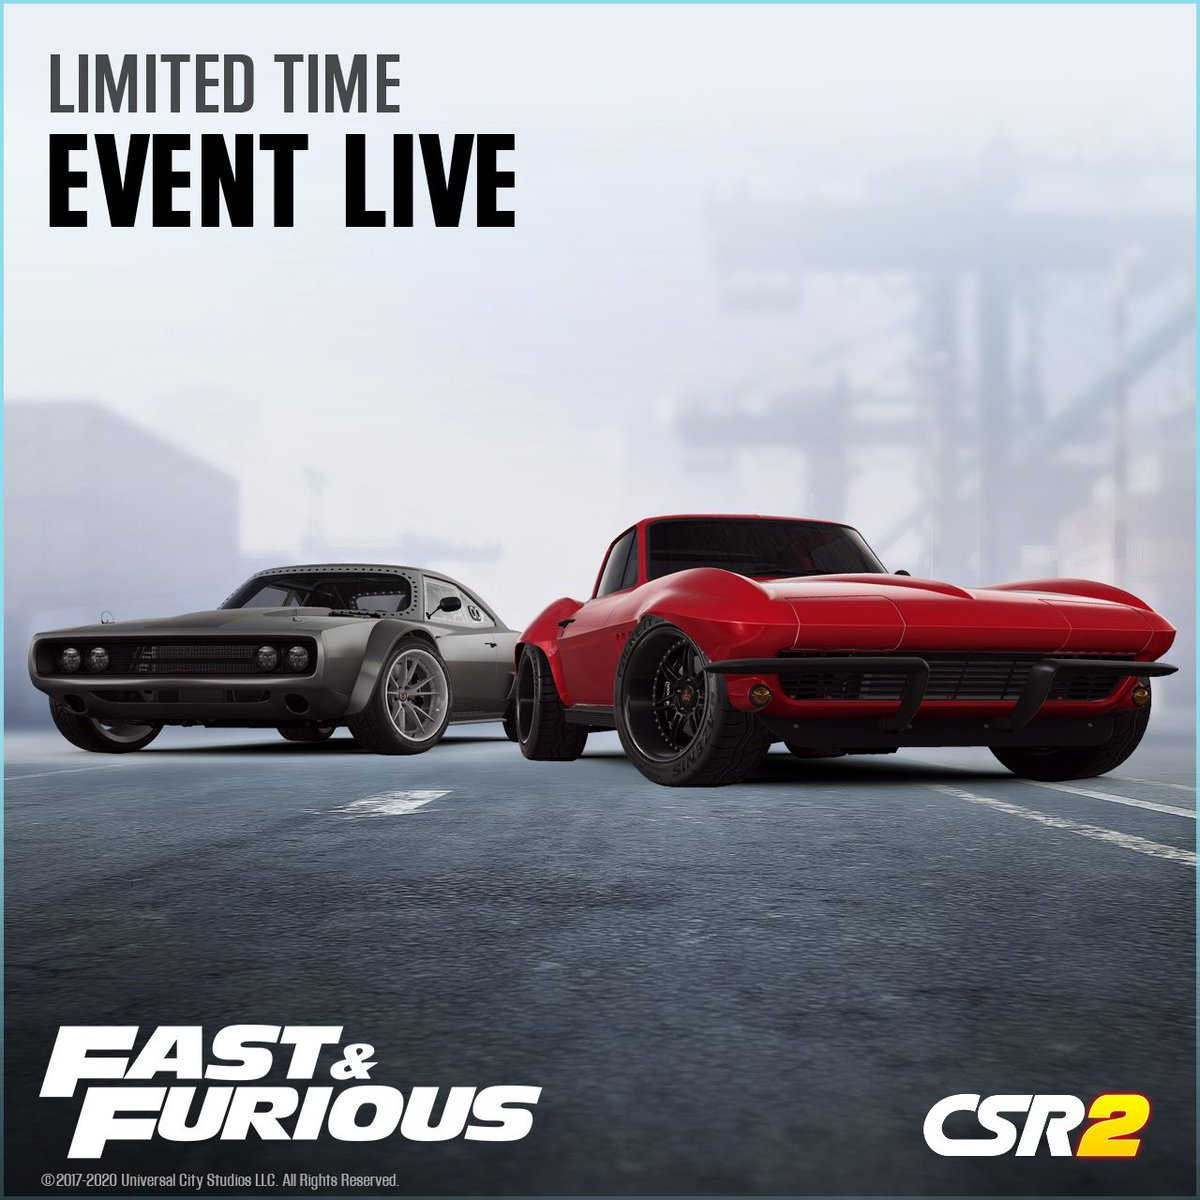 It's time to step up as Fast and Furious returns to the streets of CSR2 #CSR2 #FastFurious. https://t.co/raiwxtXpeE